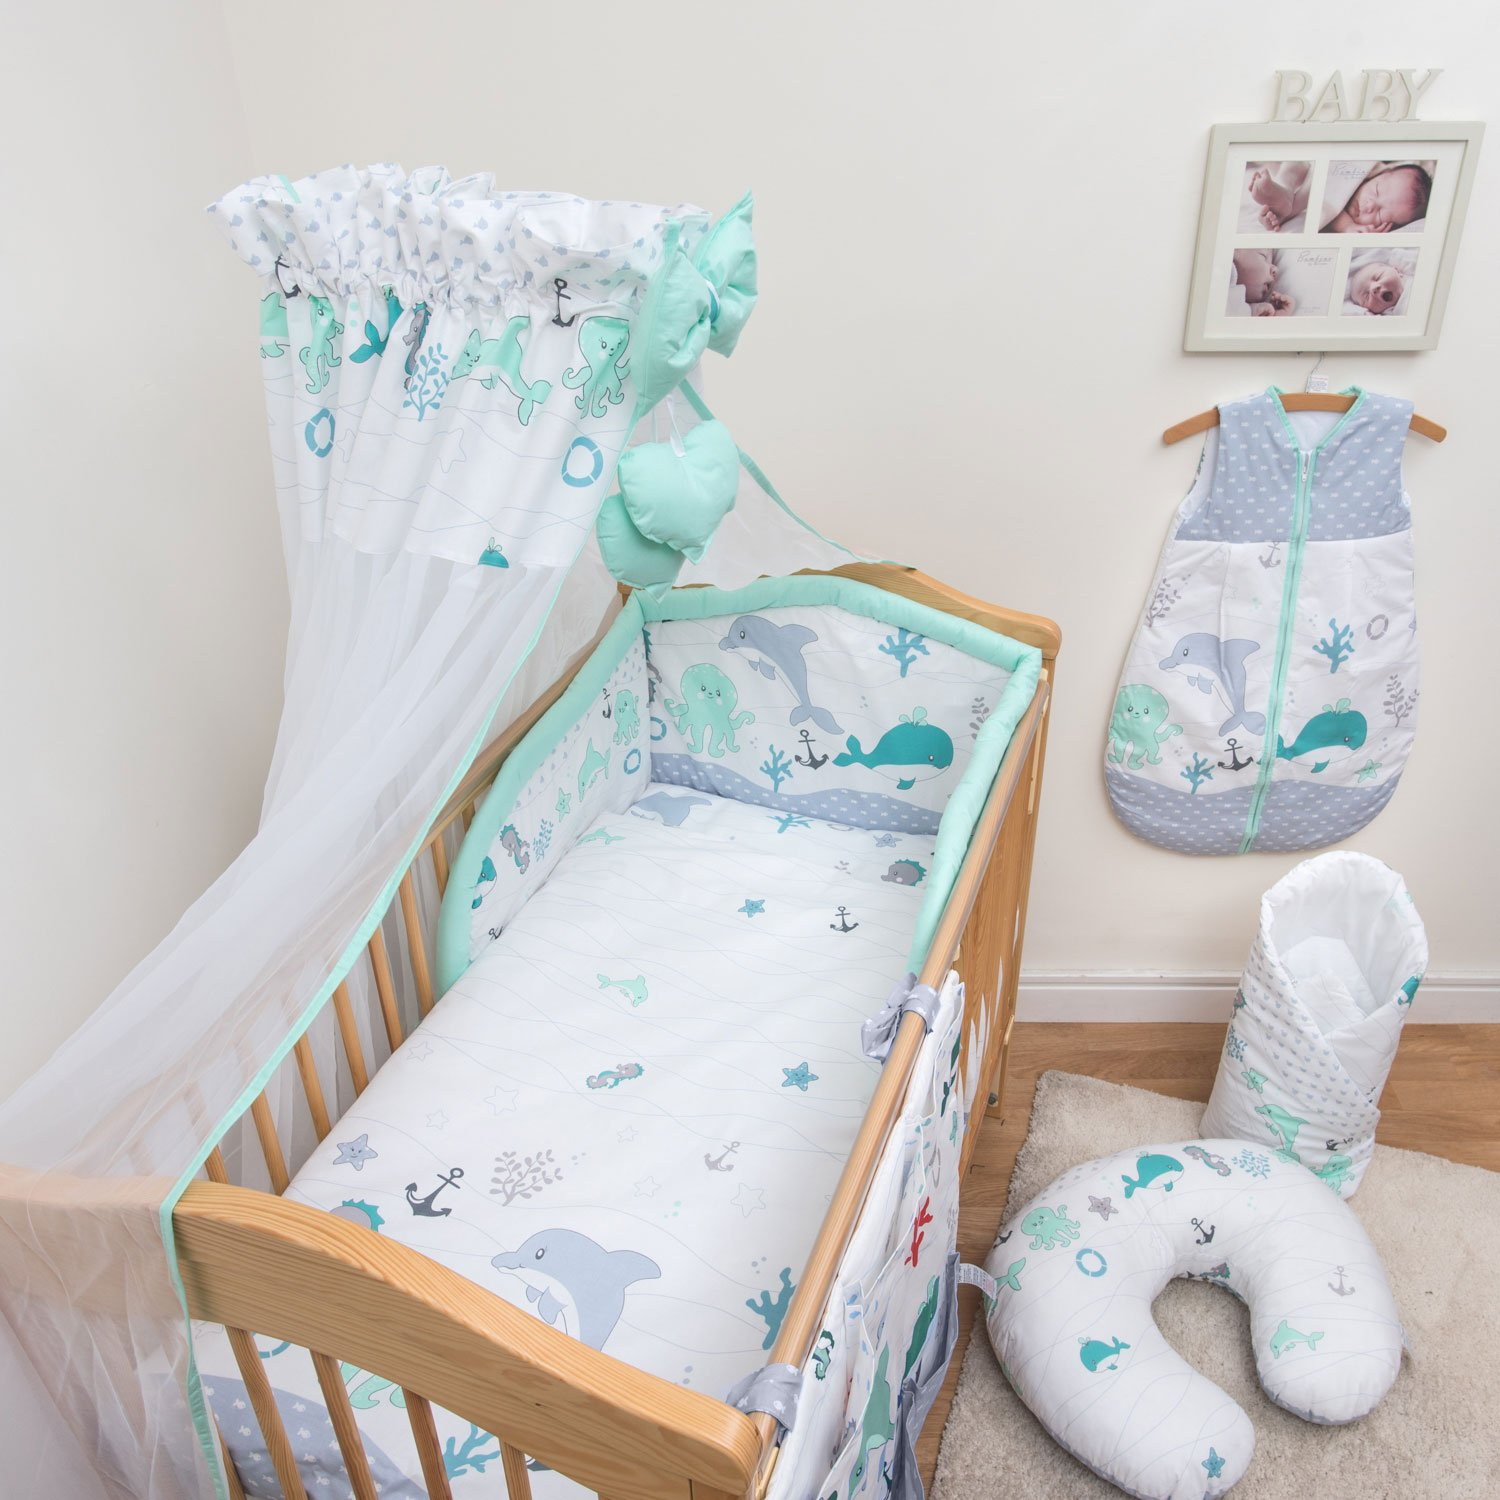 Fits Cot 120x60 cm, Pattern 14 10 Piece Cot Bedding Set with Safety Padded Bumper